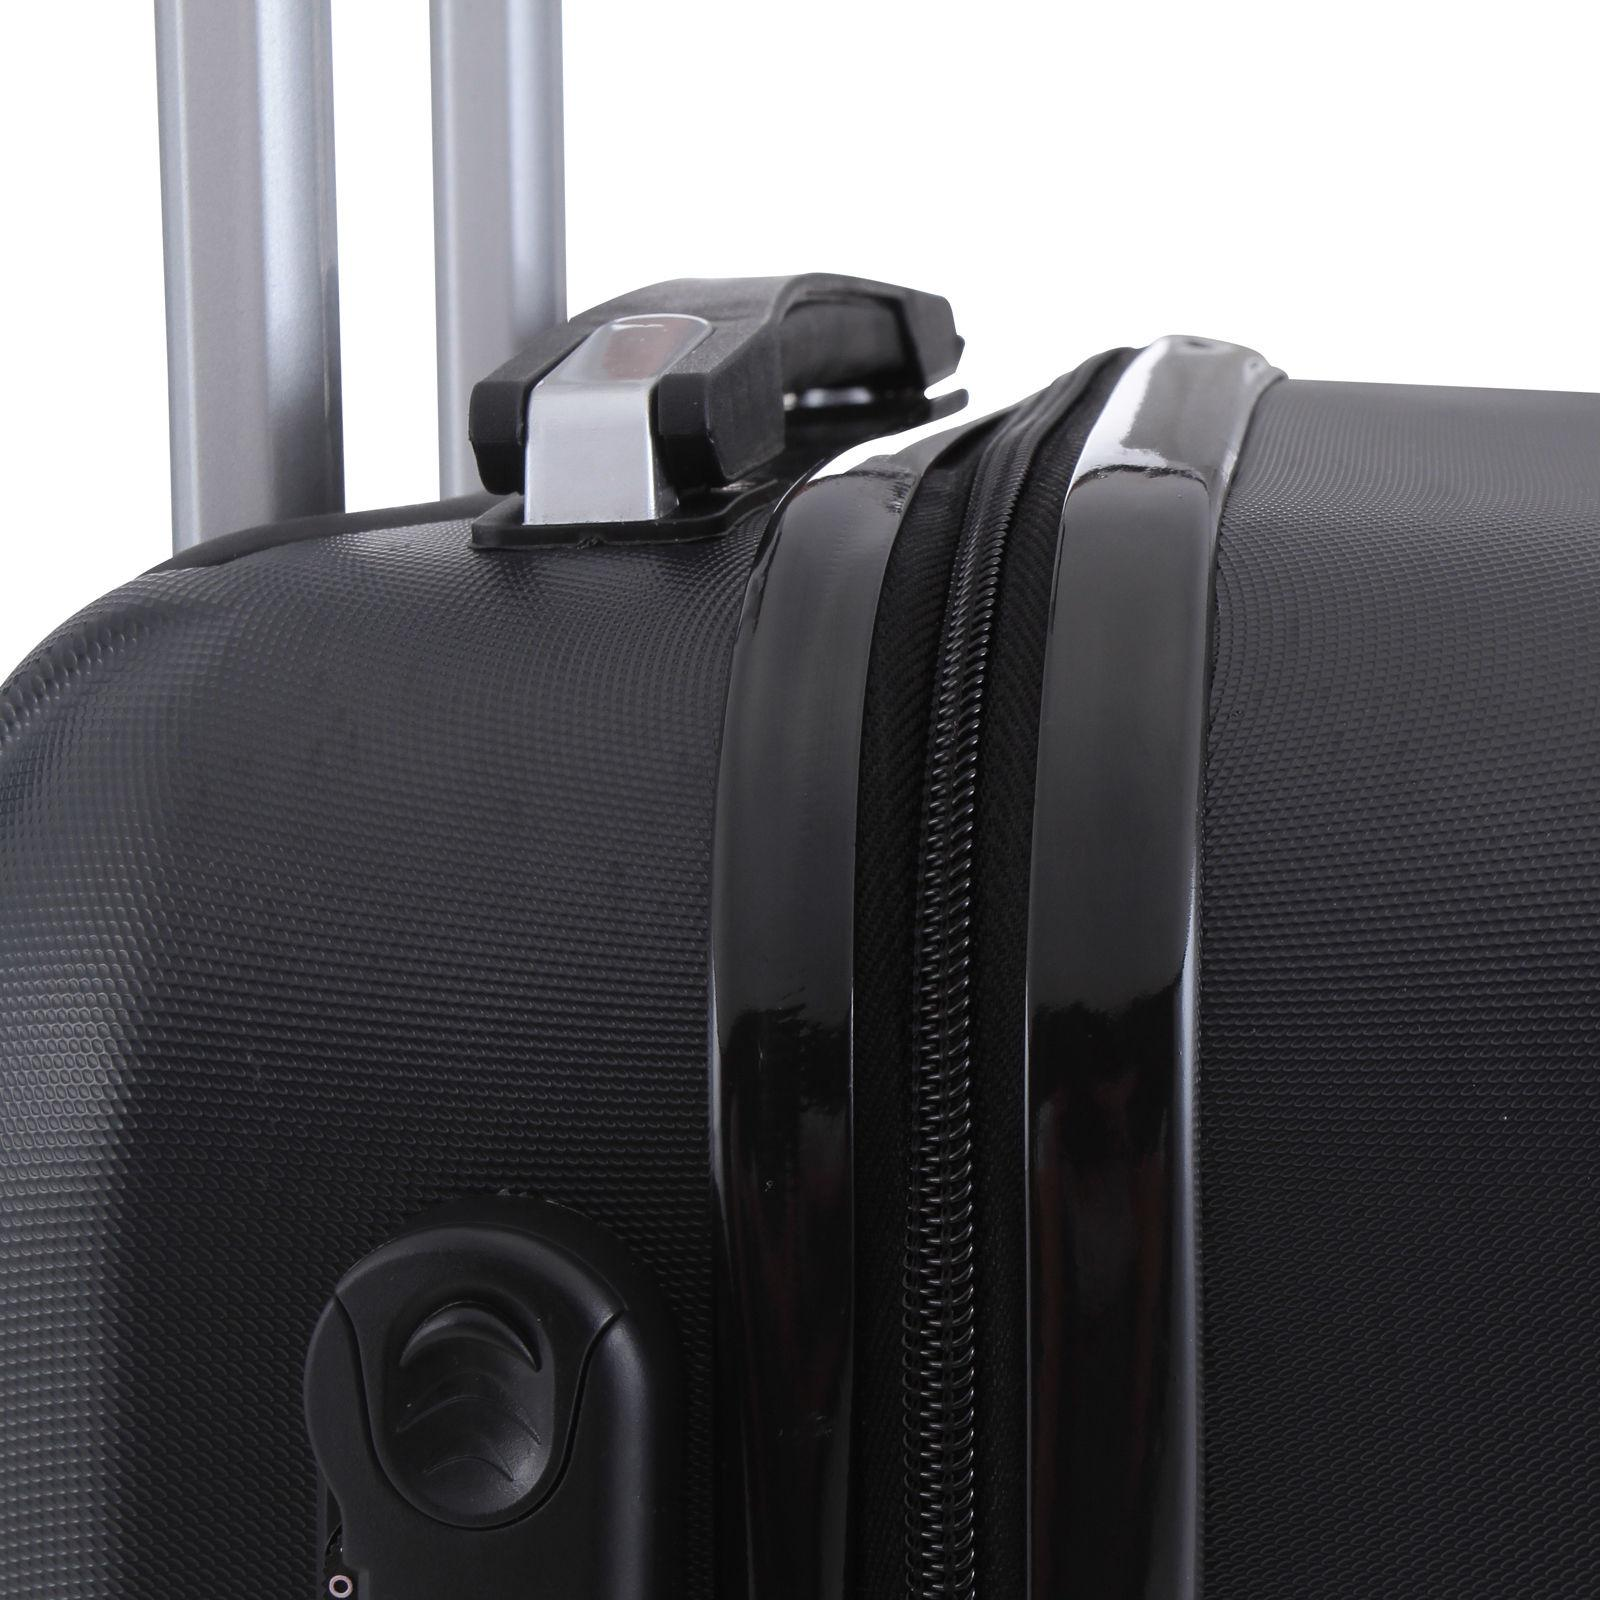 4 ABS Luggage Set Light Case